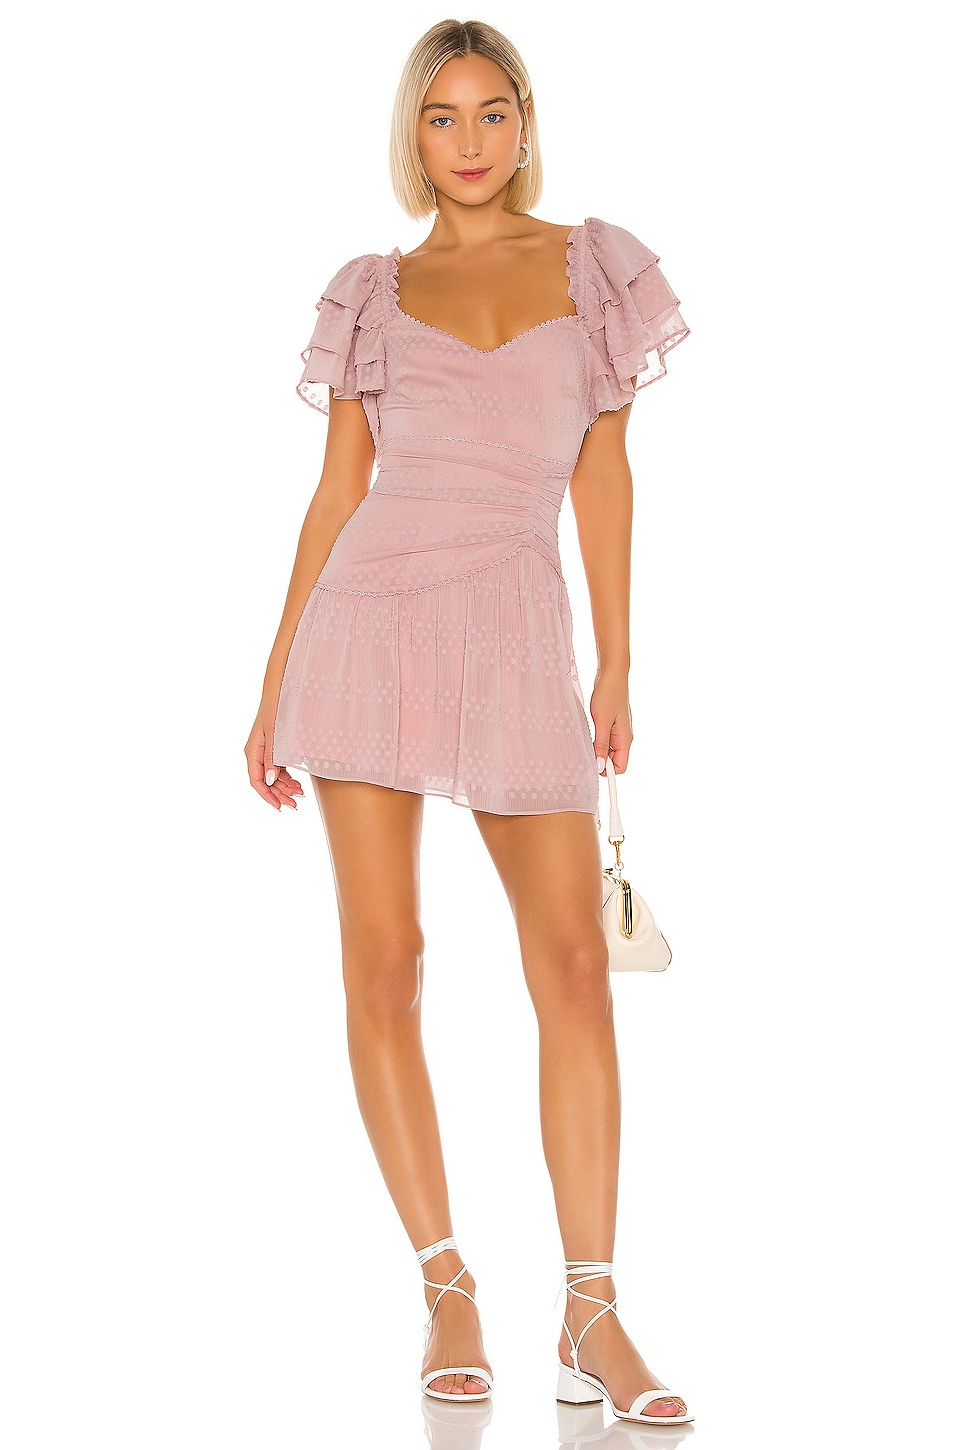 Tularosa Lilou Dress in Petal Pink